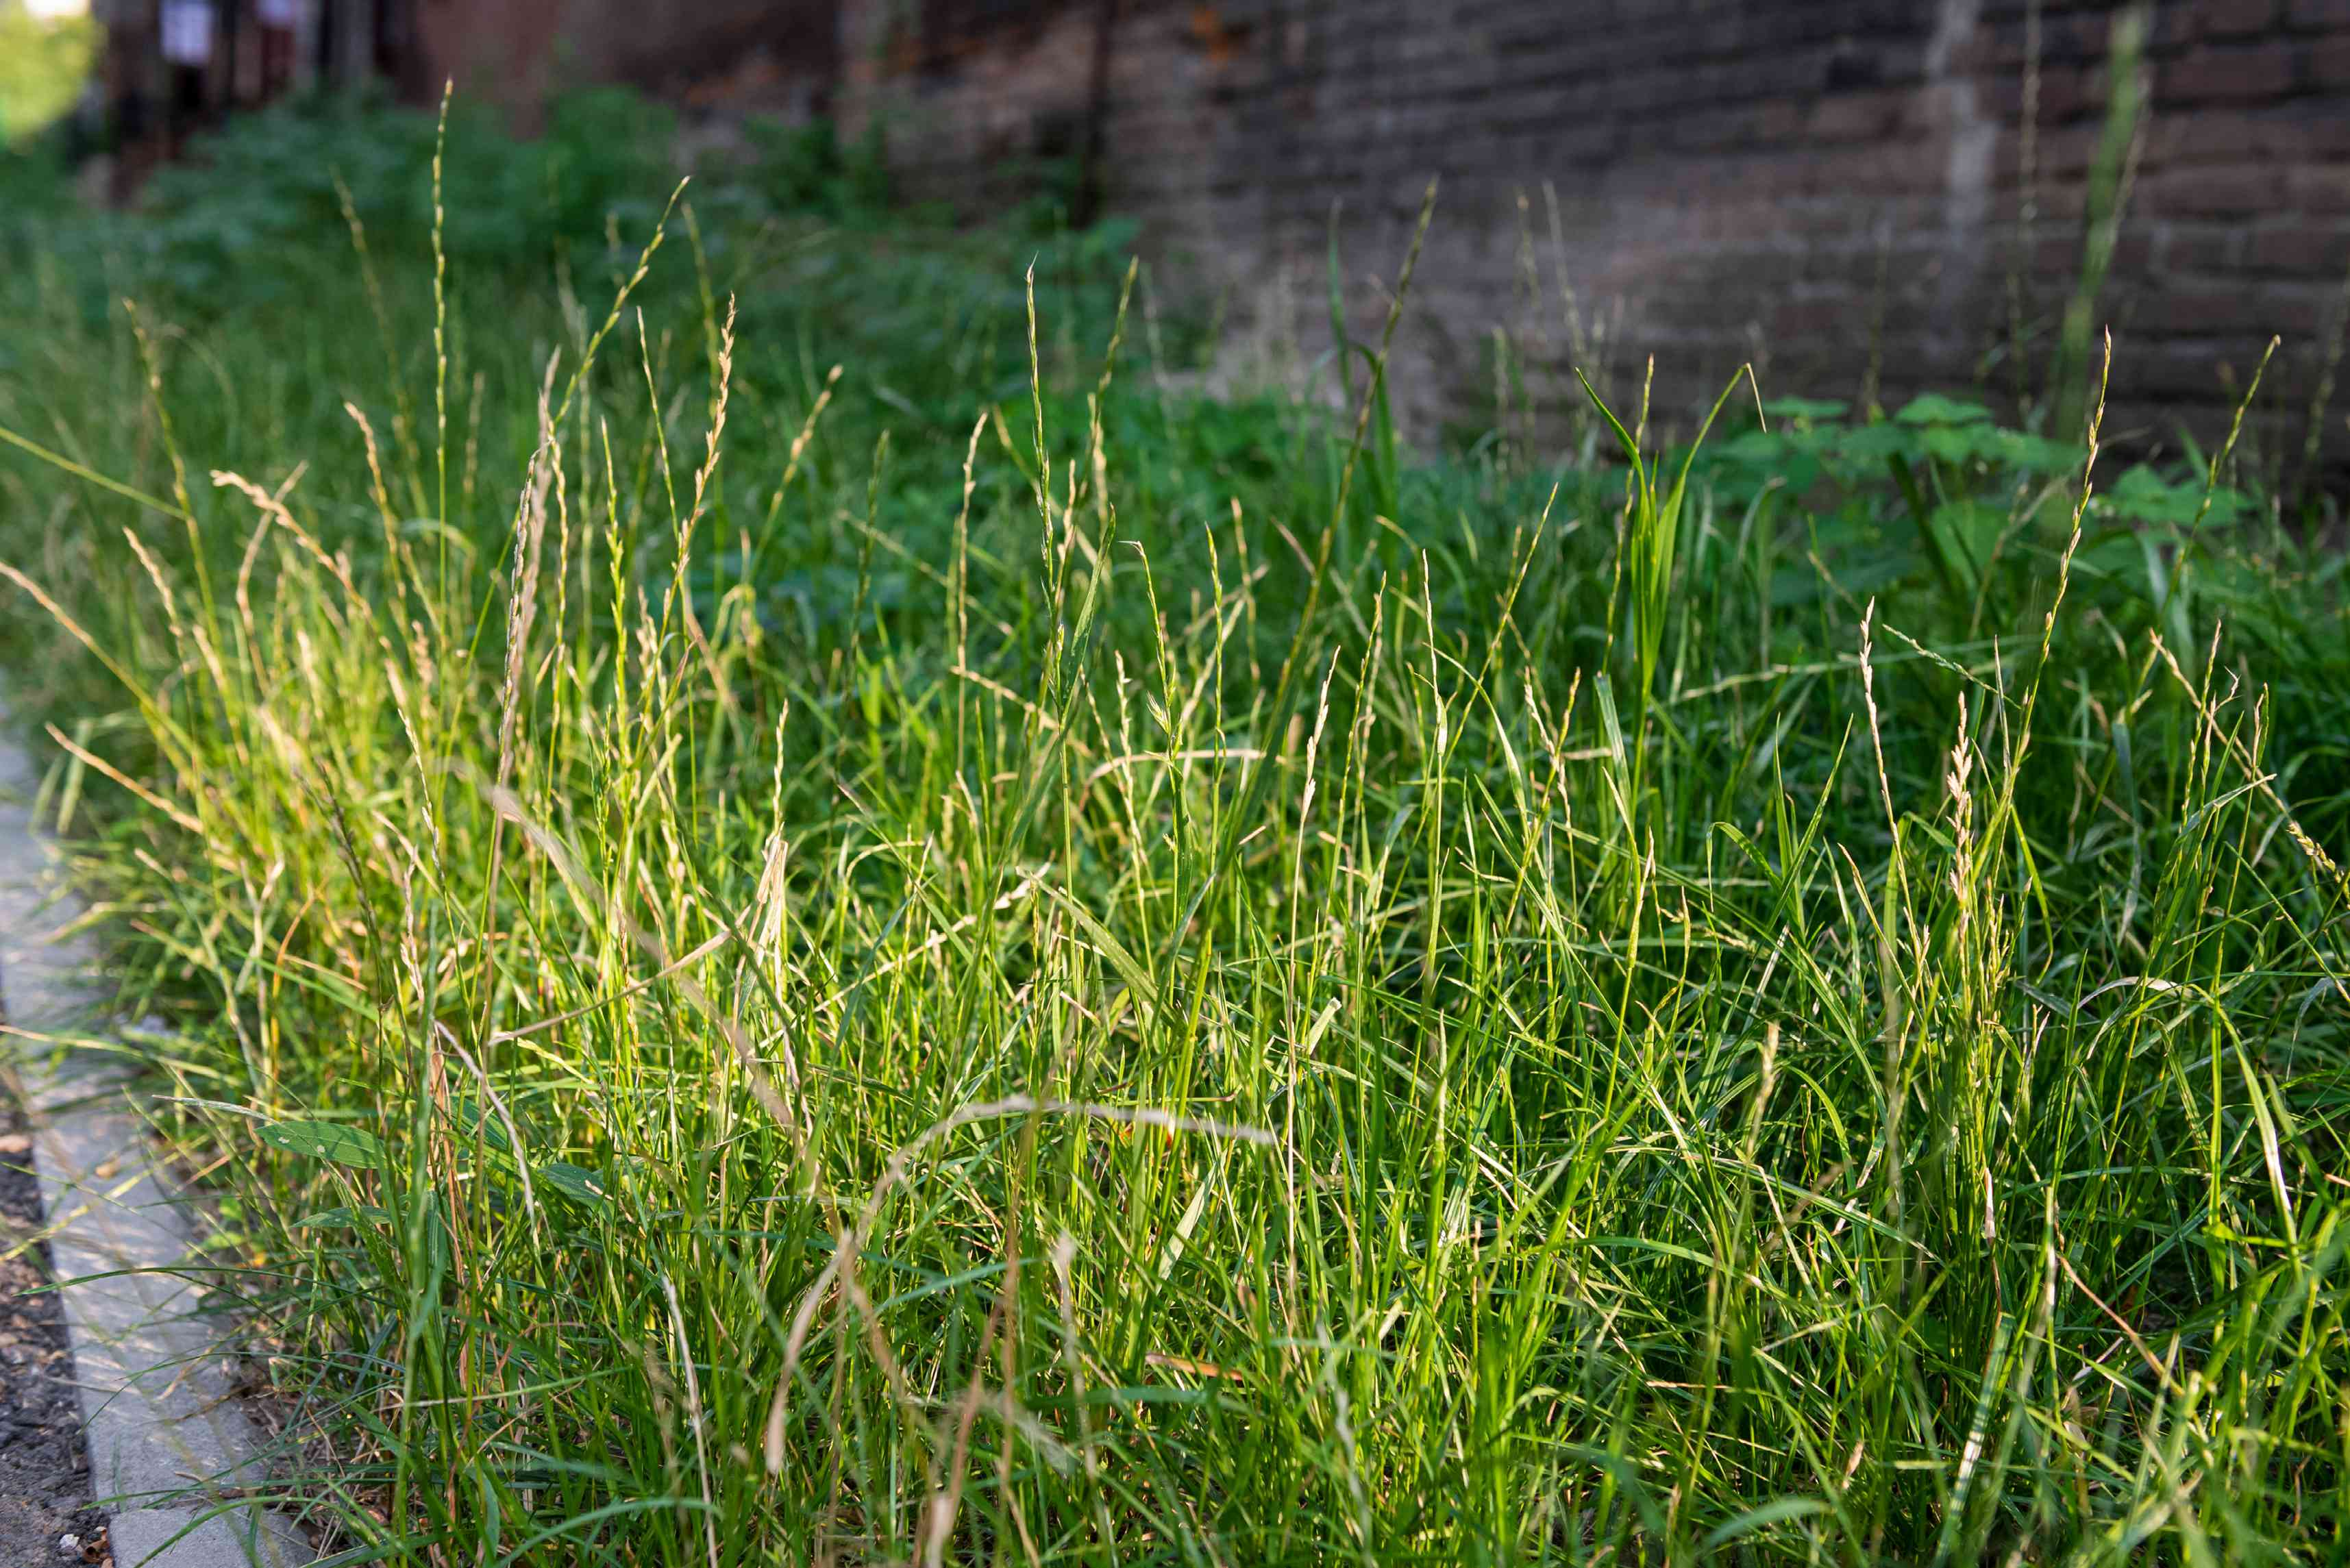 Perennial ryegrass with short and thin green blades and tan seed stems in lawn